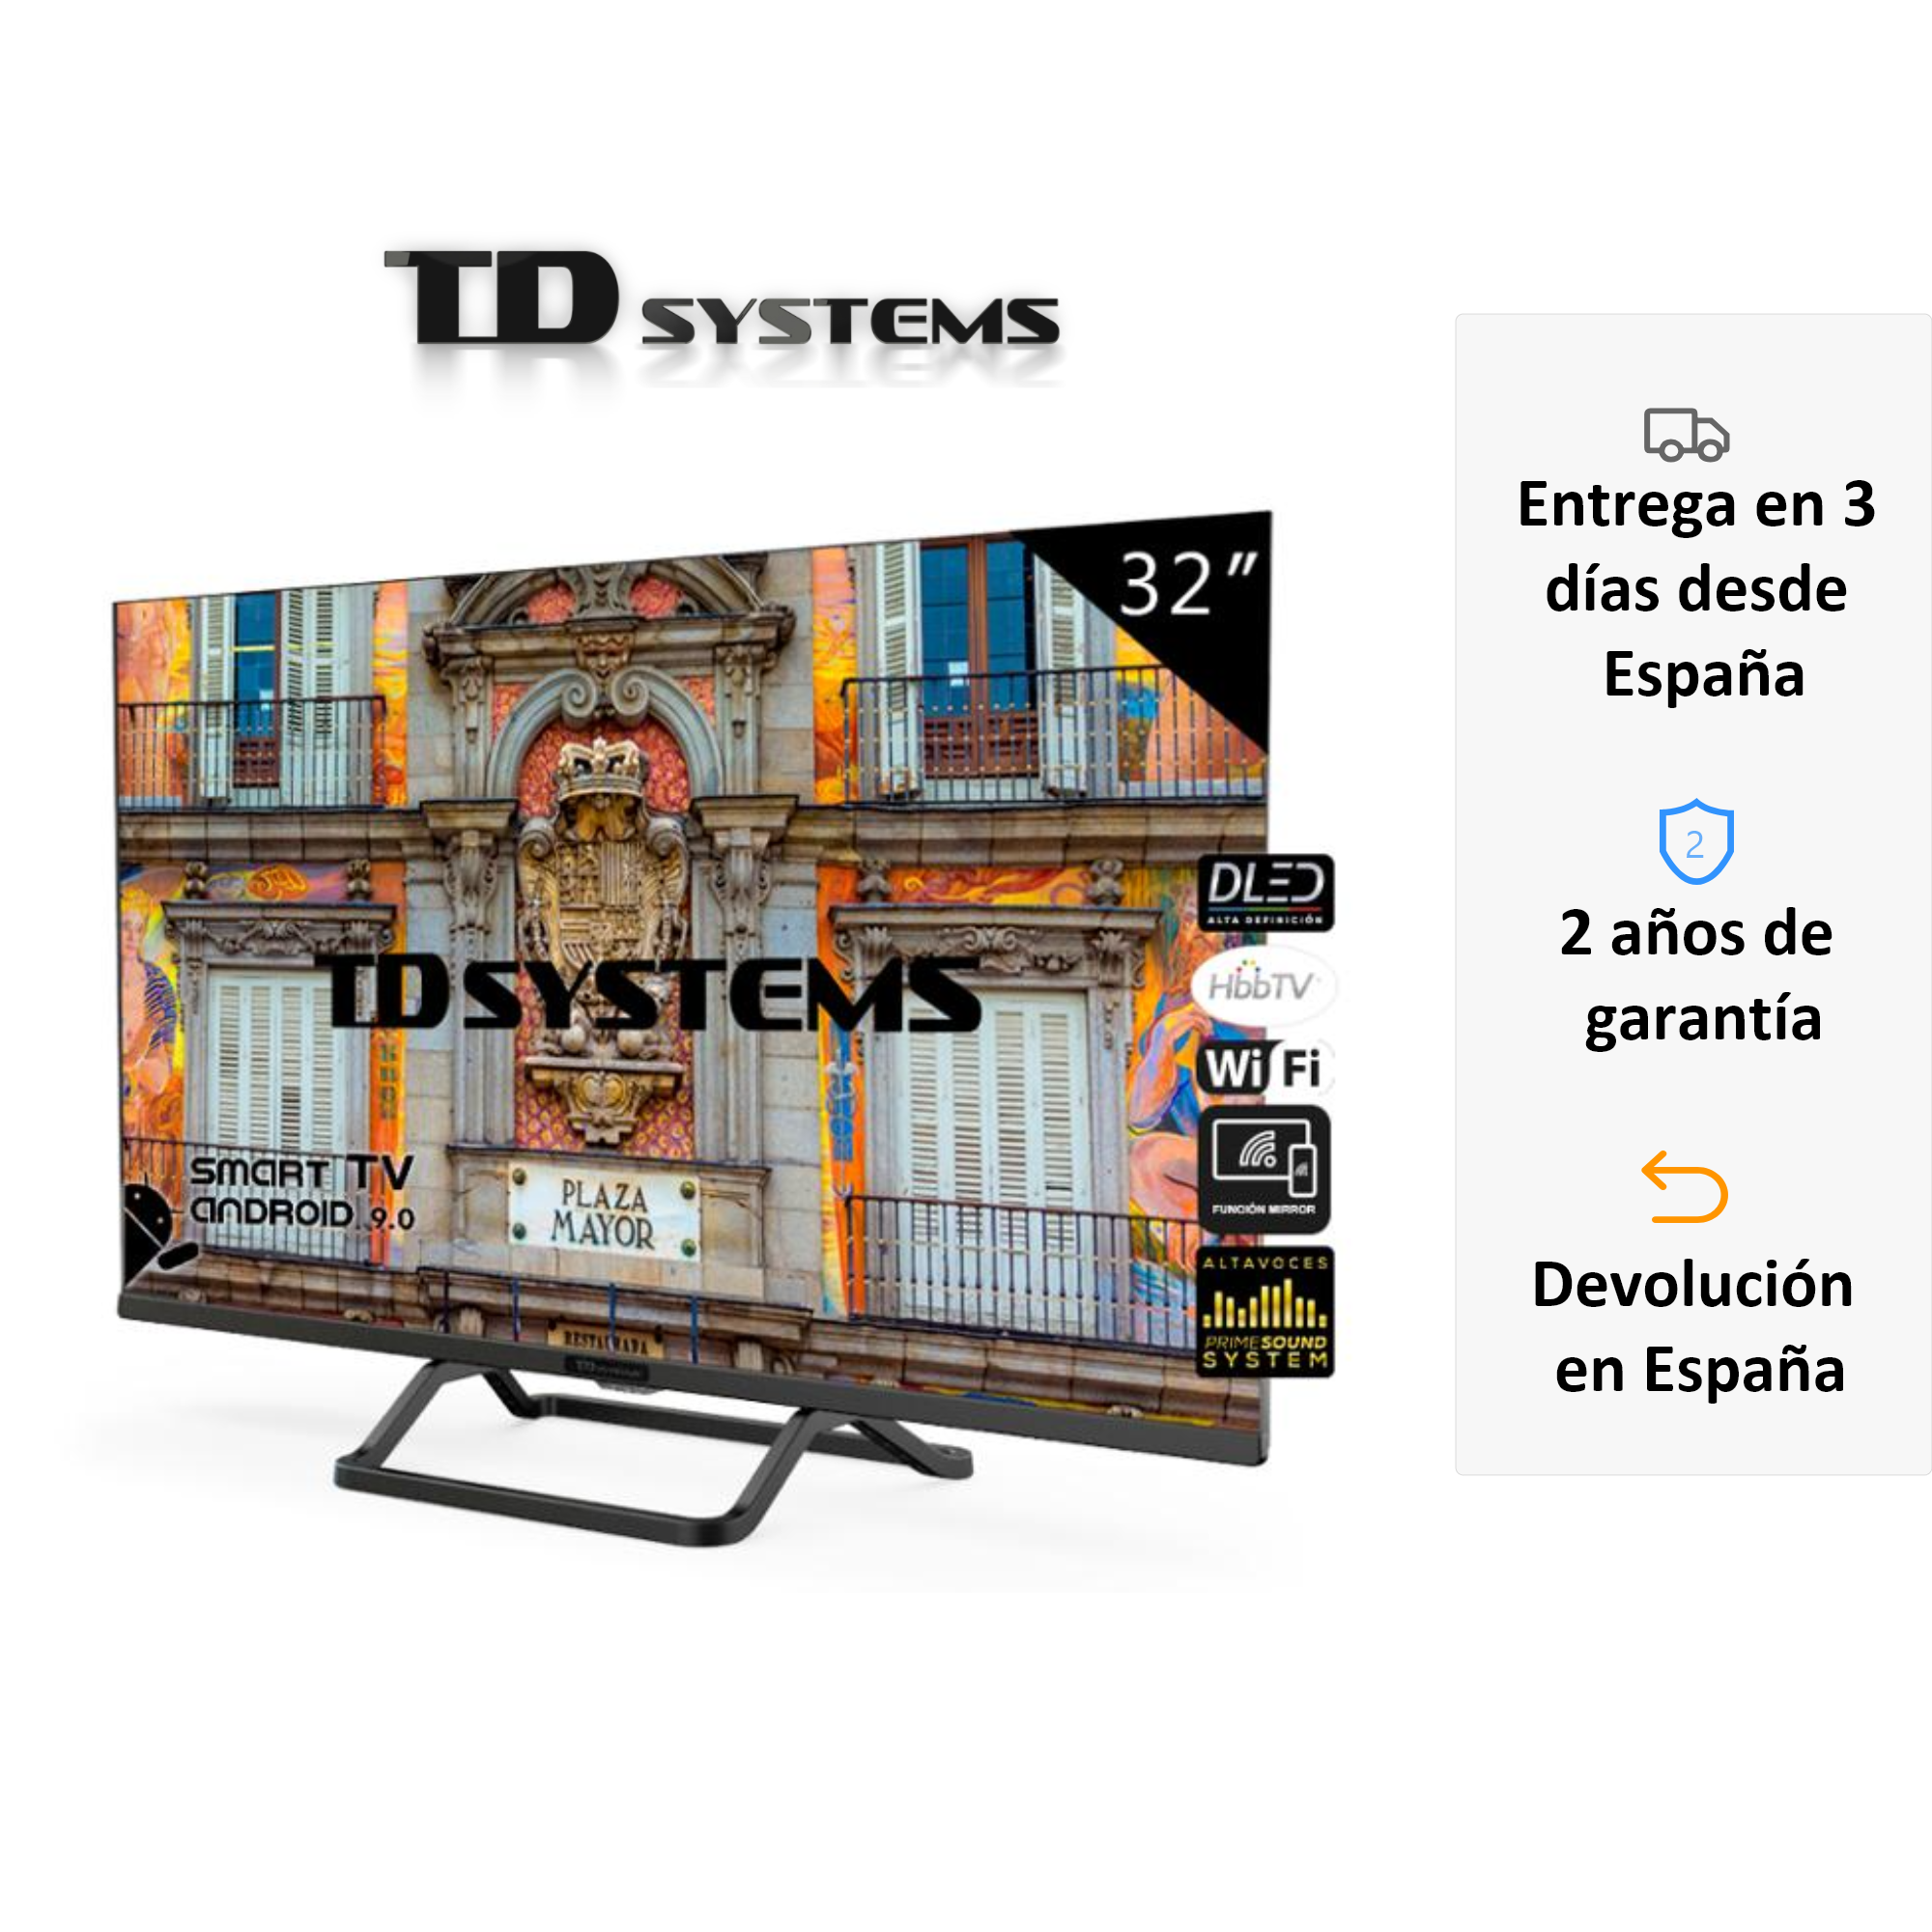 Televisions Smart TV 32 Inch TD K32DLX10HS Systems. 3x HDMI, DVB-T2/C/S2, HbbTV [Shipping From Spain, Guarantee Old 2]